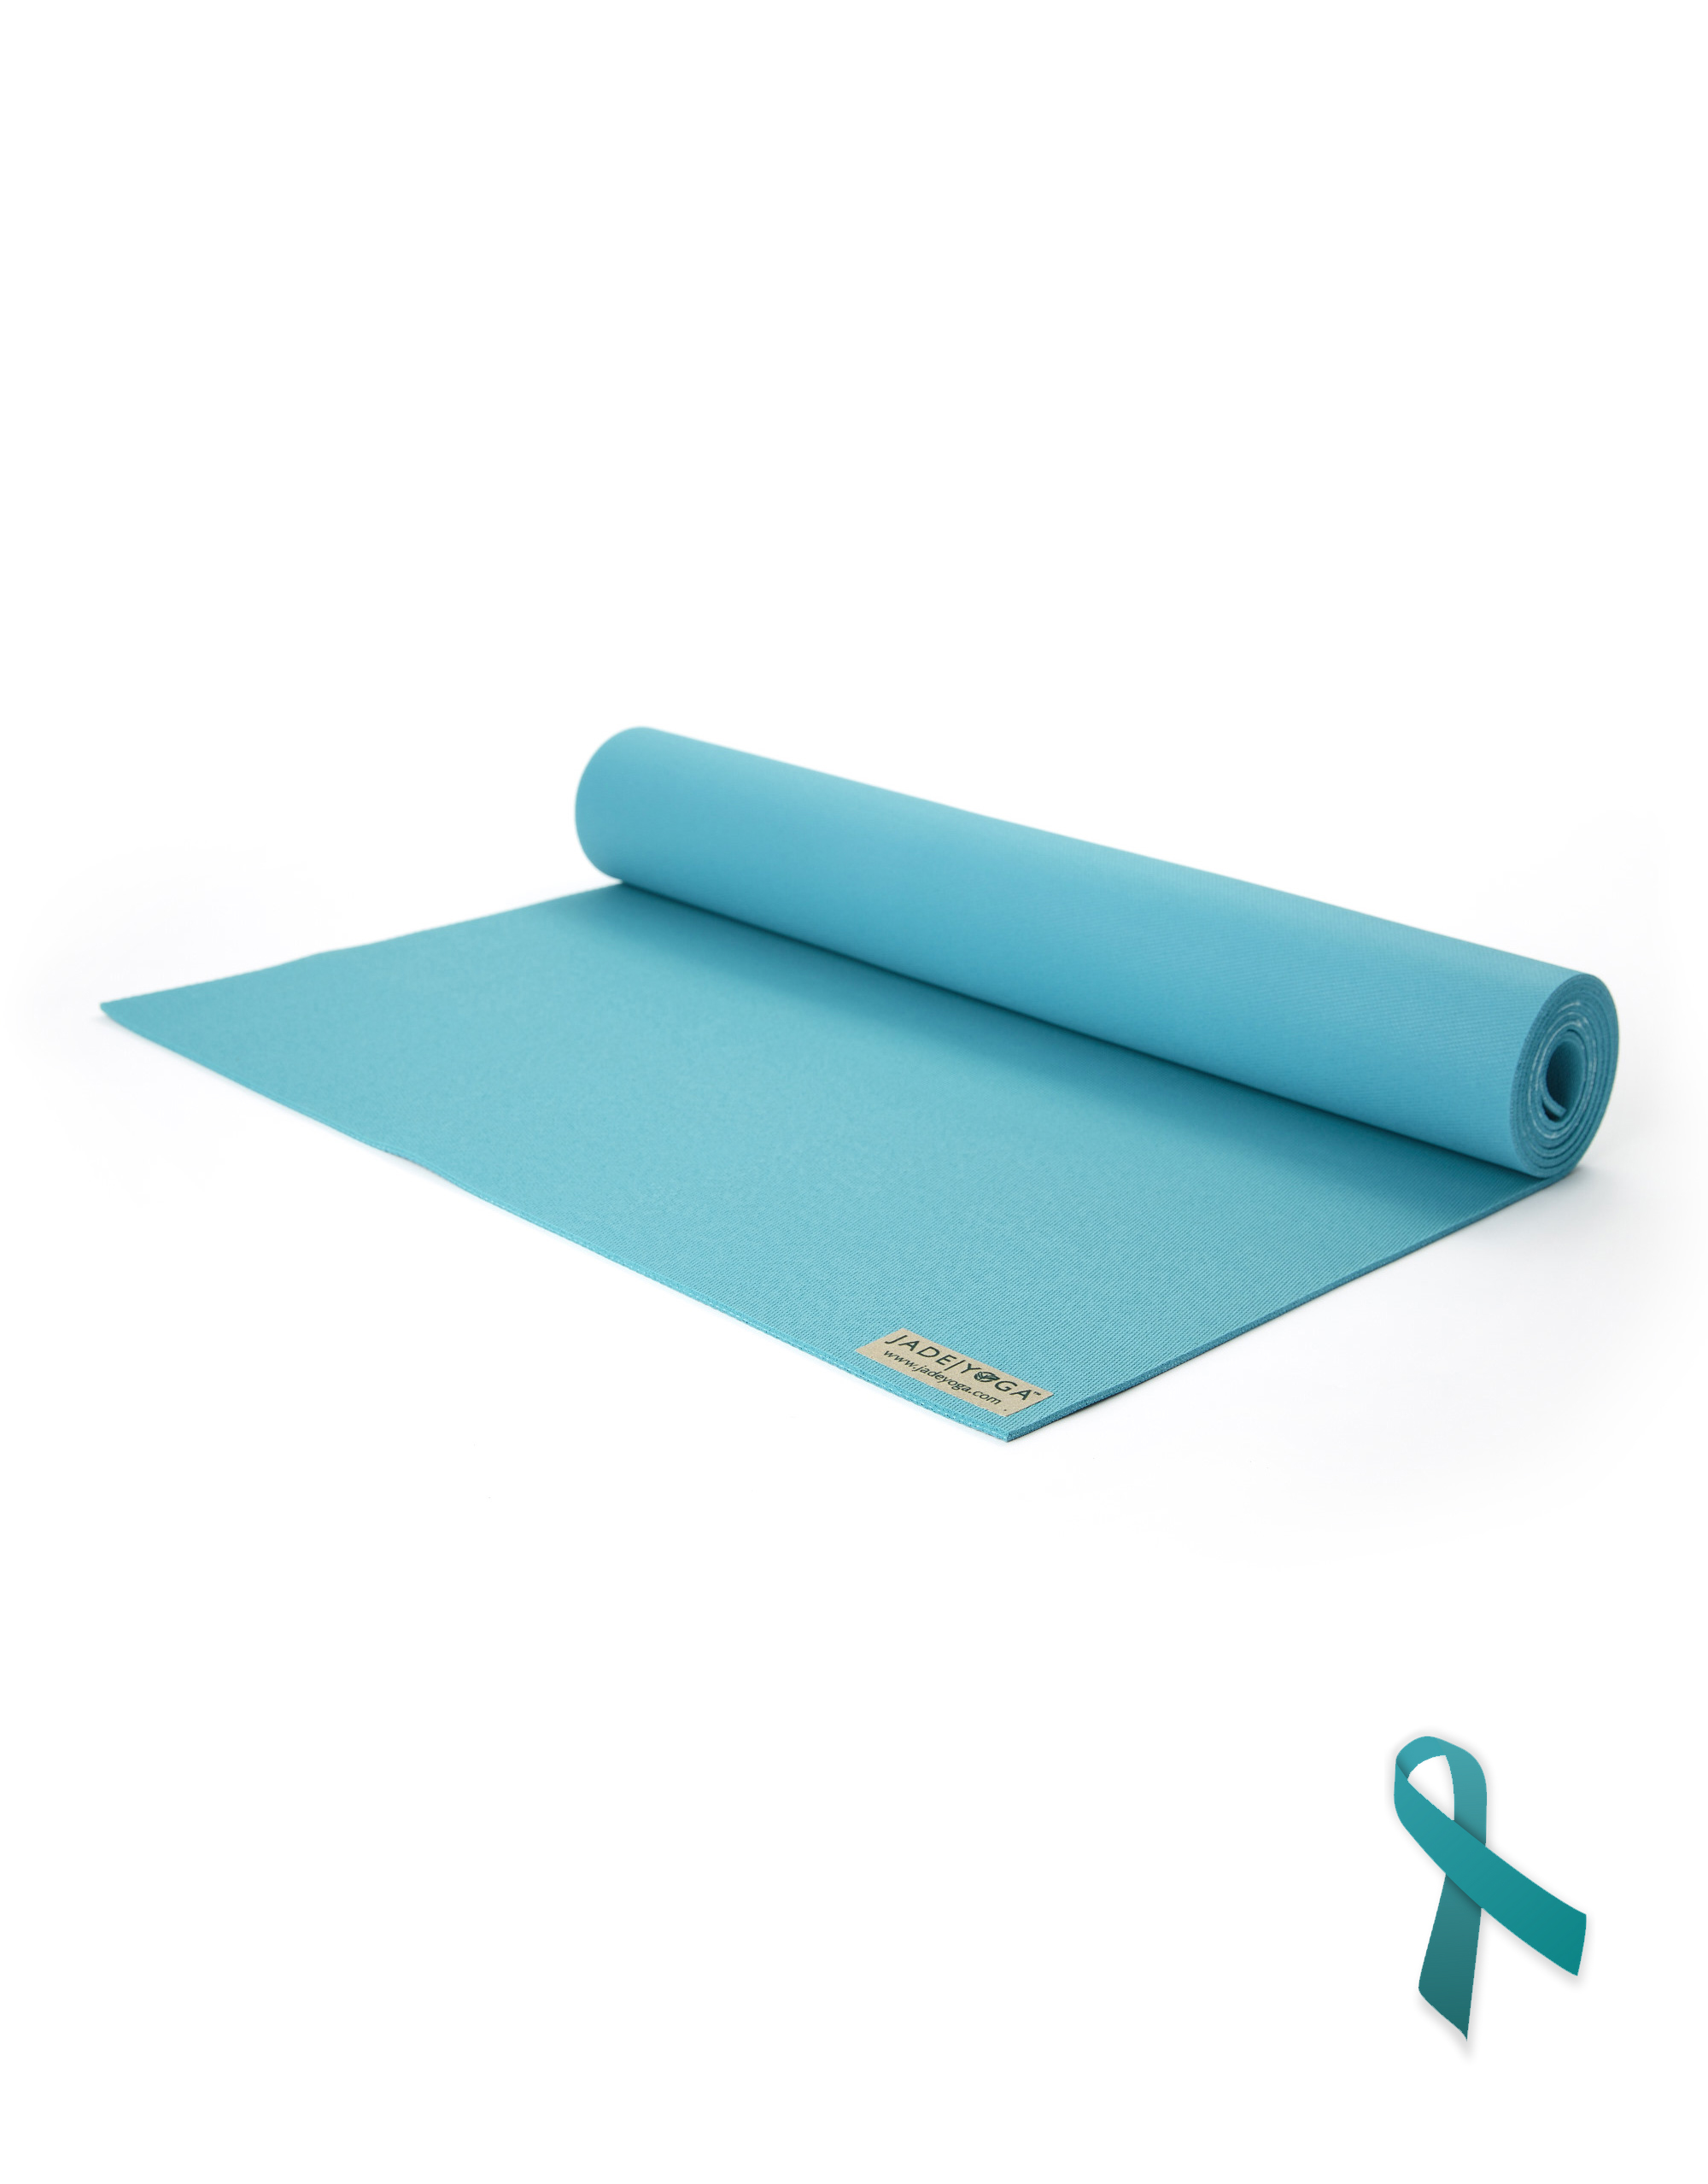 travel acai brands yoga manduka rebel mat mats superlite blue eko truth products